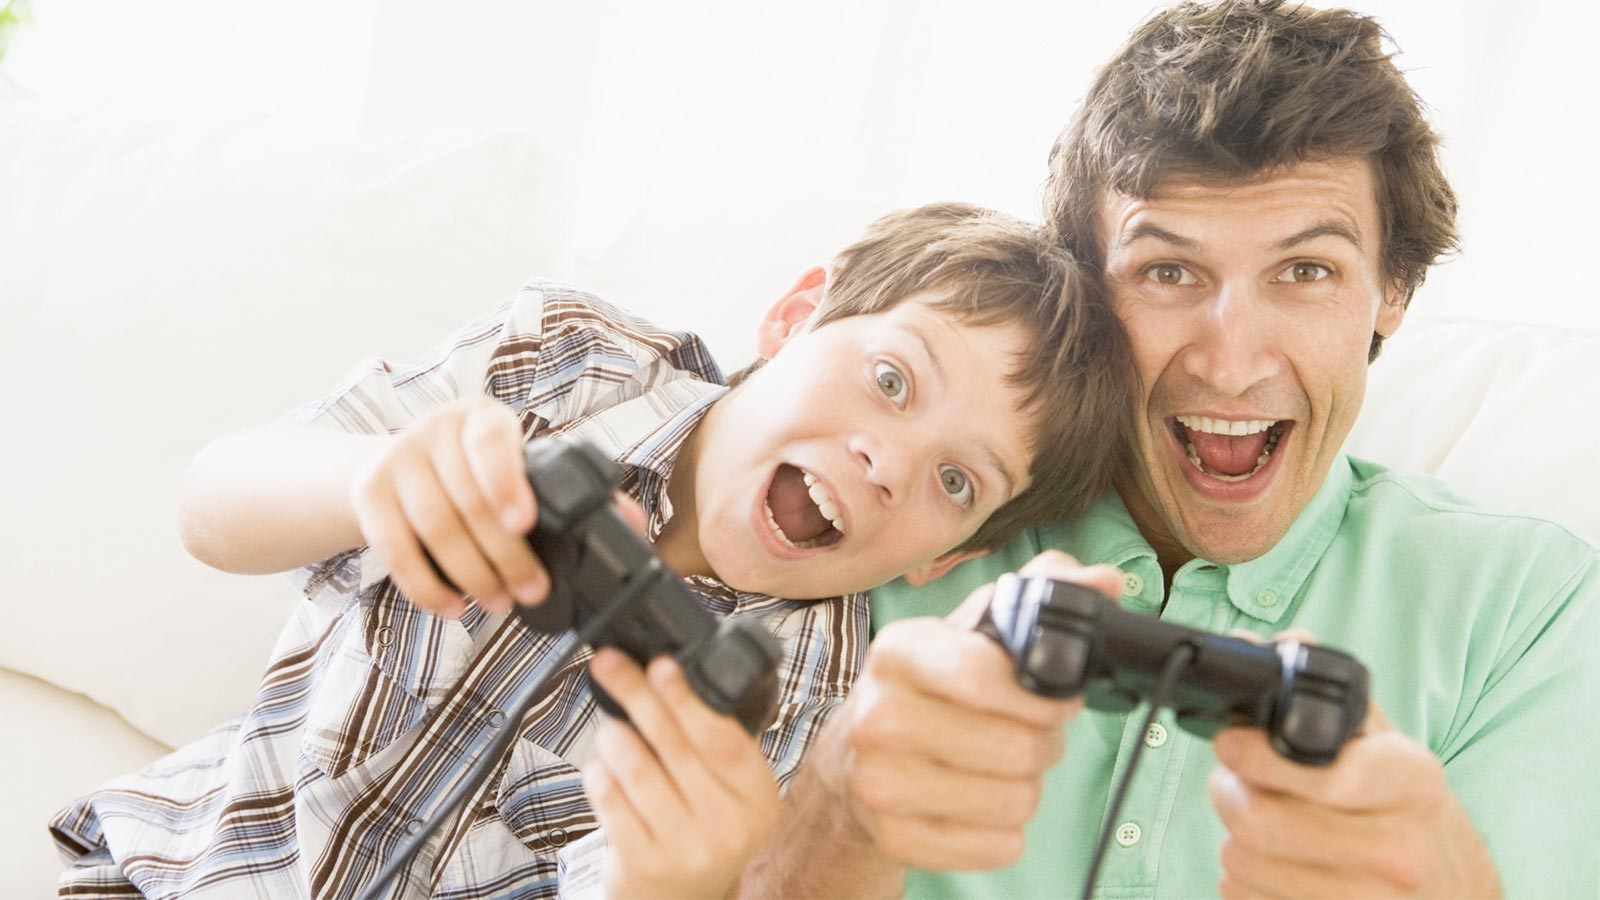 5 Reasons Why Gaming Is Actually an Excellent Hobby ...